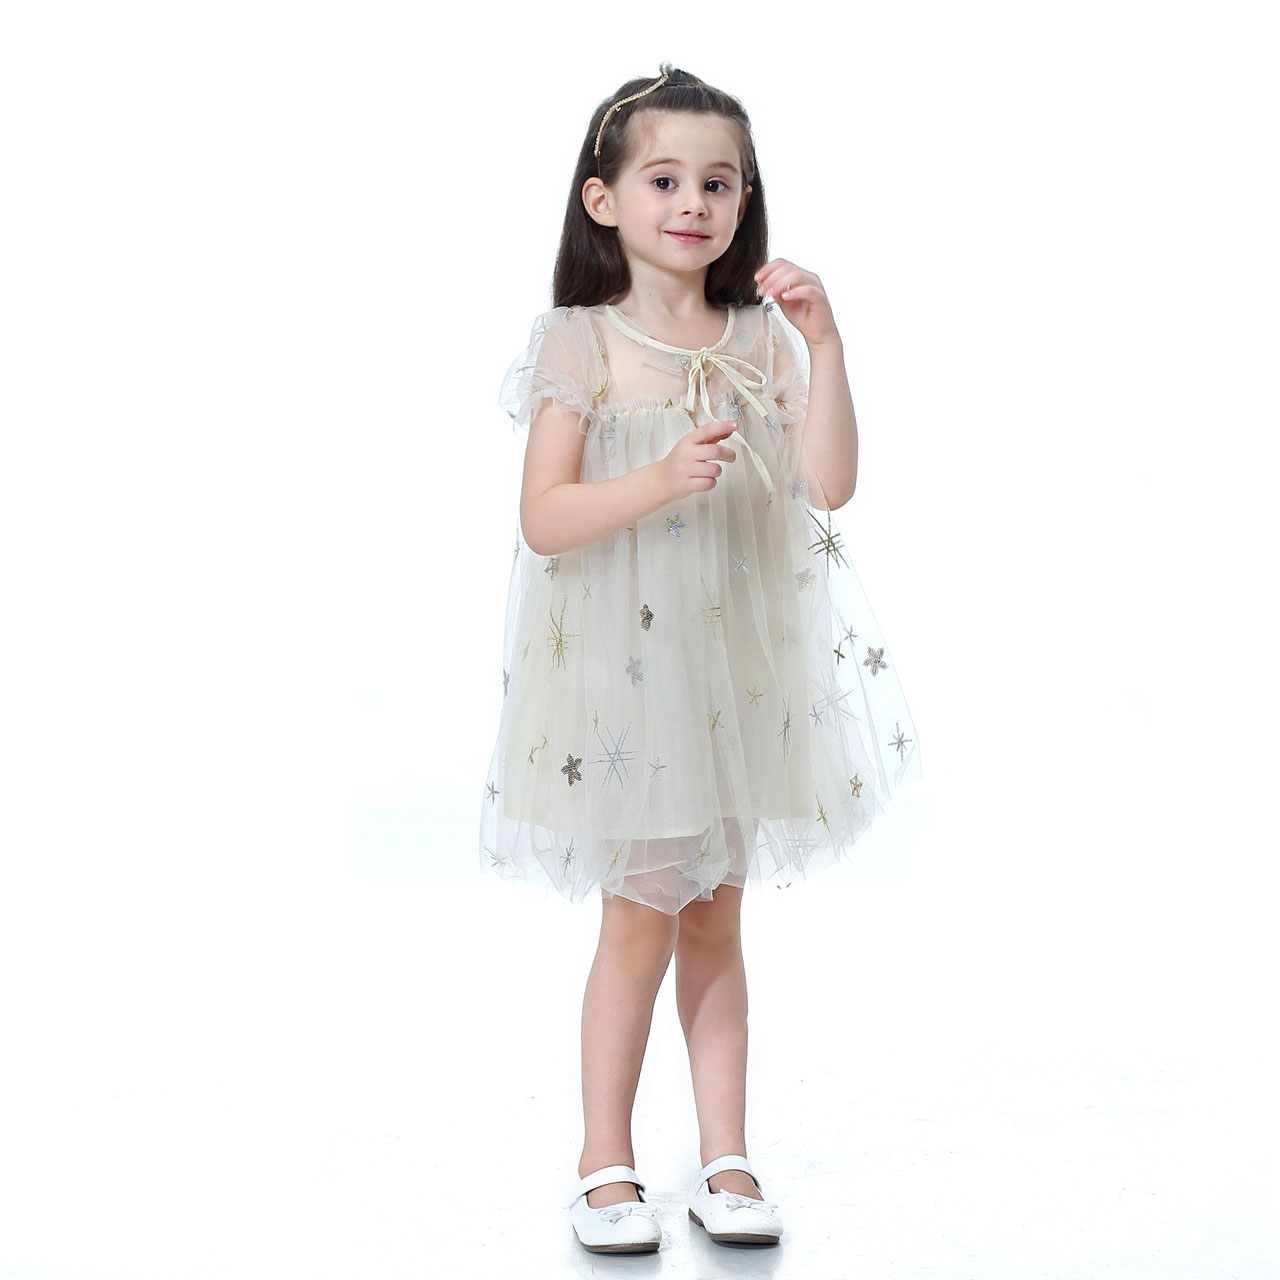 Girls Clothes 2019 New Summer Children Floral Chiffon Dresses For Girls 2 3 4 5 6 7 8 Years Toddler Girl Birthday Outfit